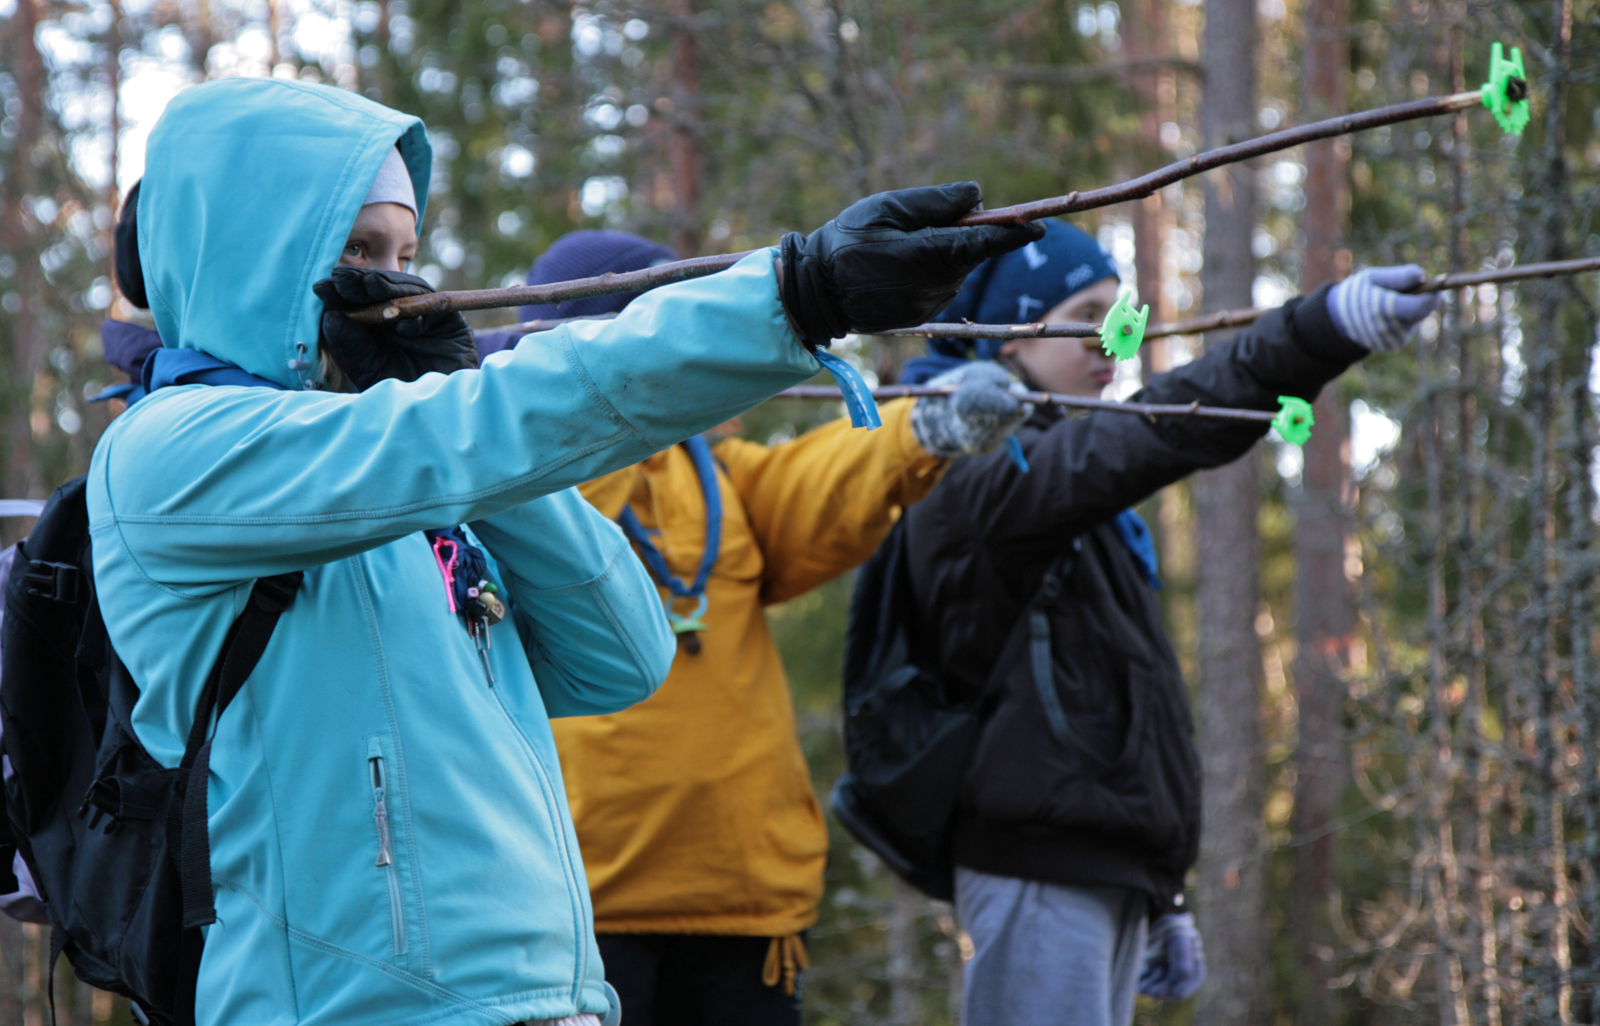 The finnish scouts and guides practises determining the height of a pine tree with a relascope. Photo: Anna Kauppi